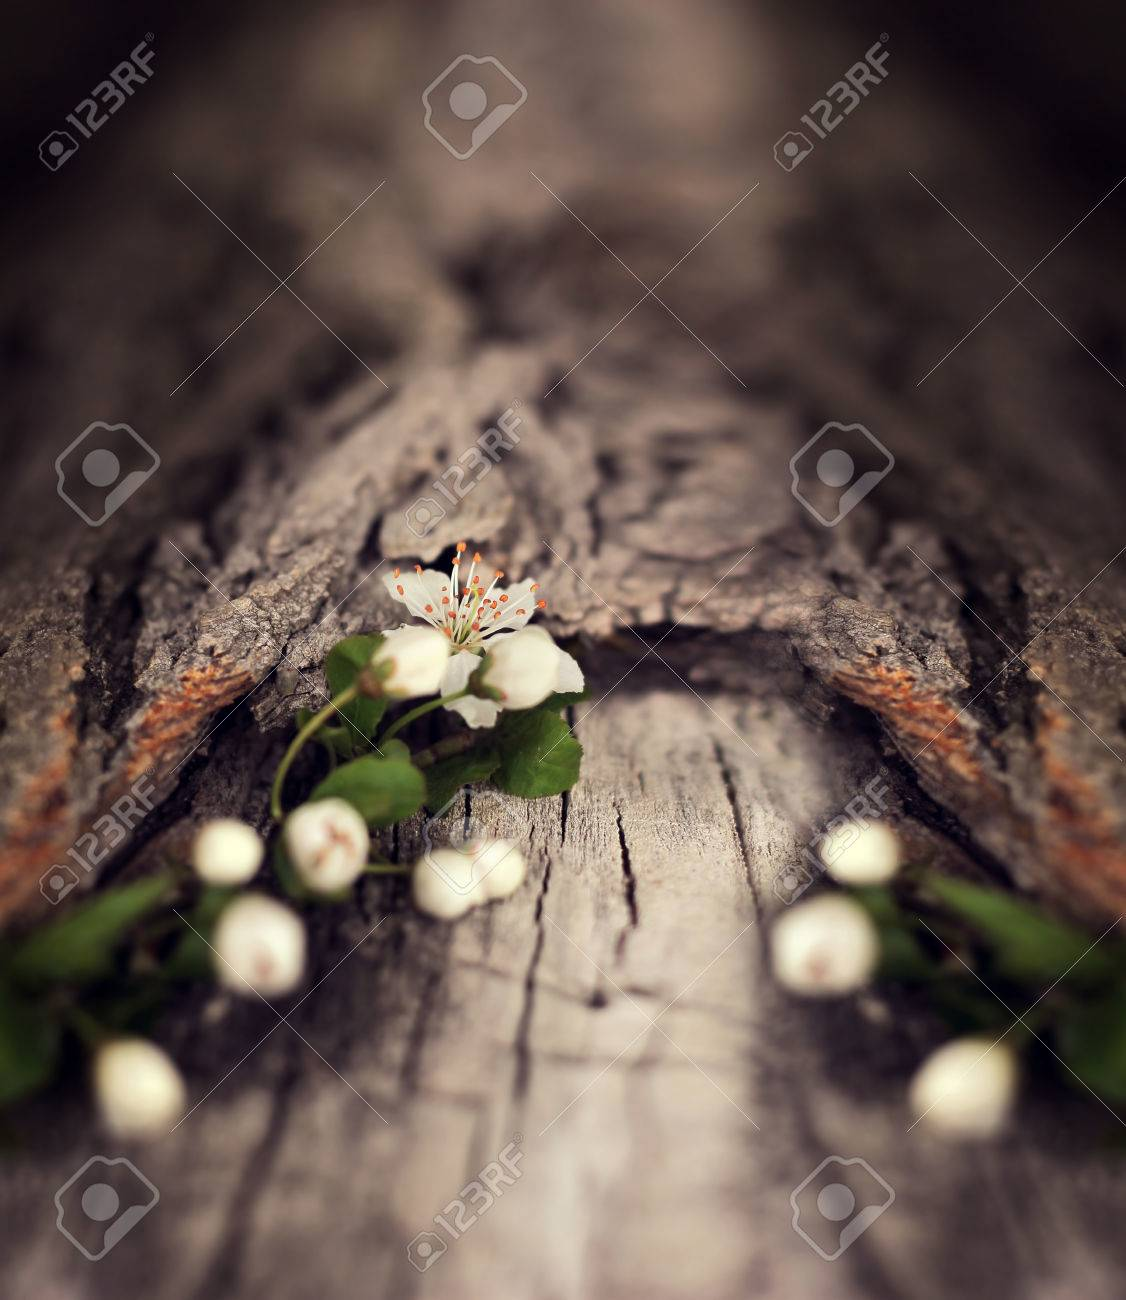 Dramatic Spring Flowers On A Rustic Wooden Background Blurred Space For Text Stock Photo